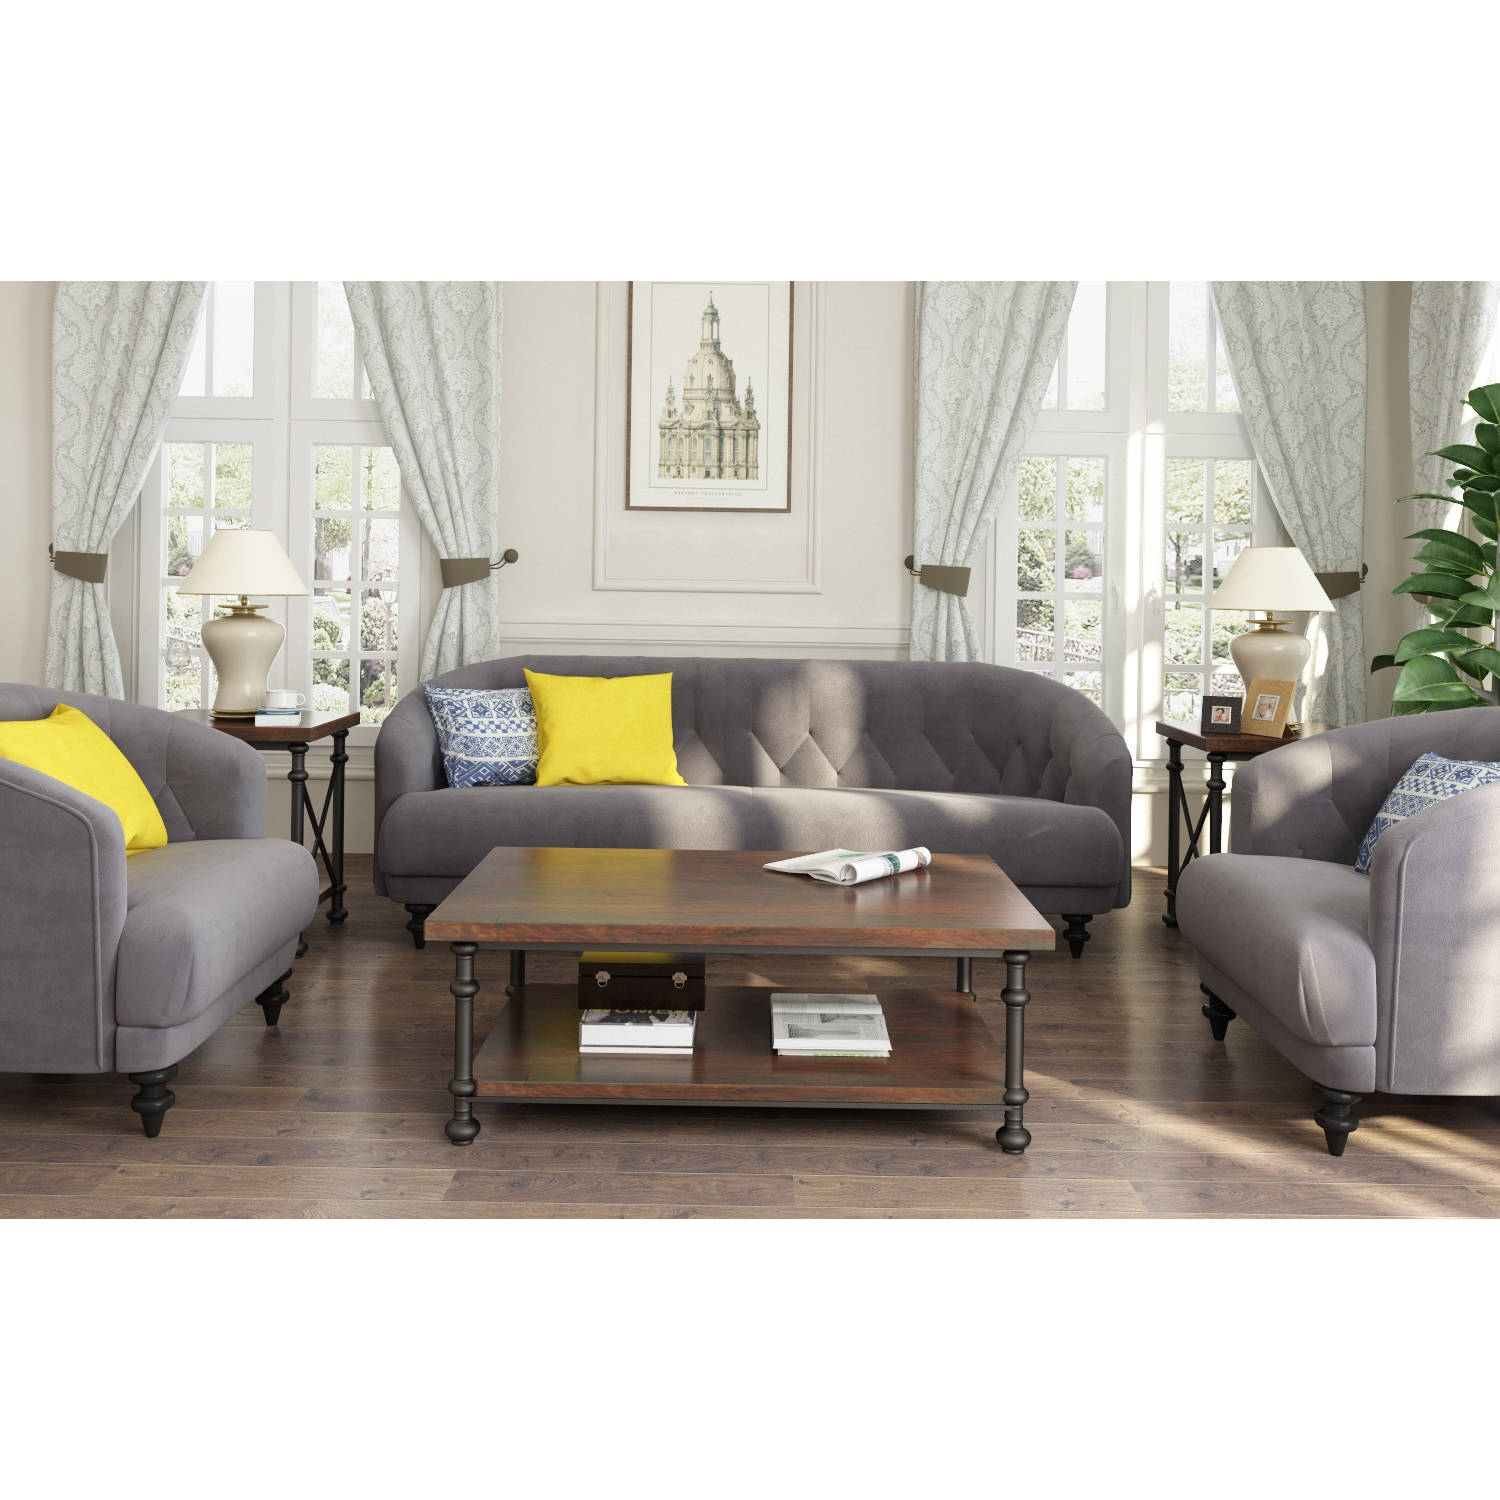 Trend Small Space Sectional Sofa 84 Sofa Table Ideas With Small With Small Sectional Sofa (Image 15 of 15)